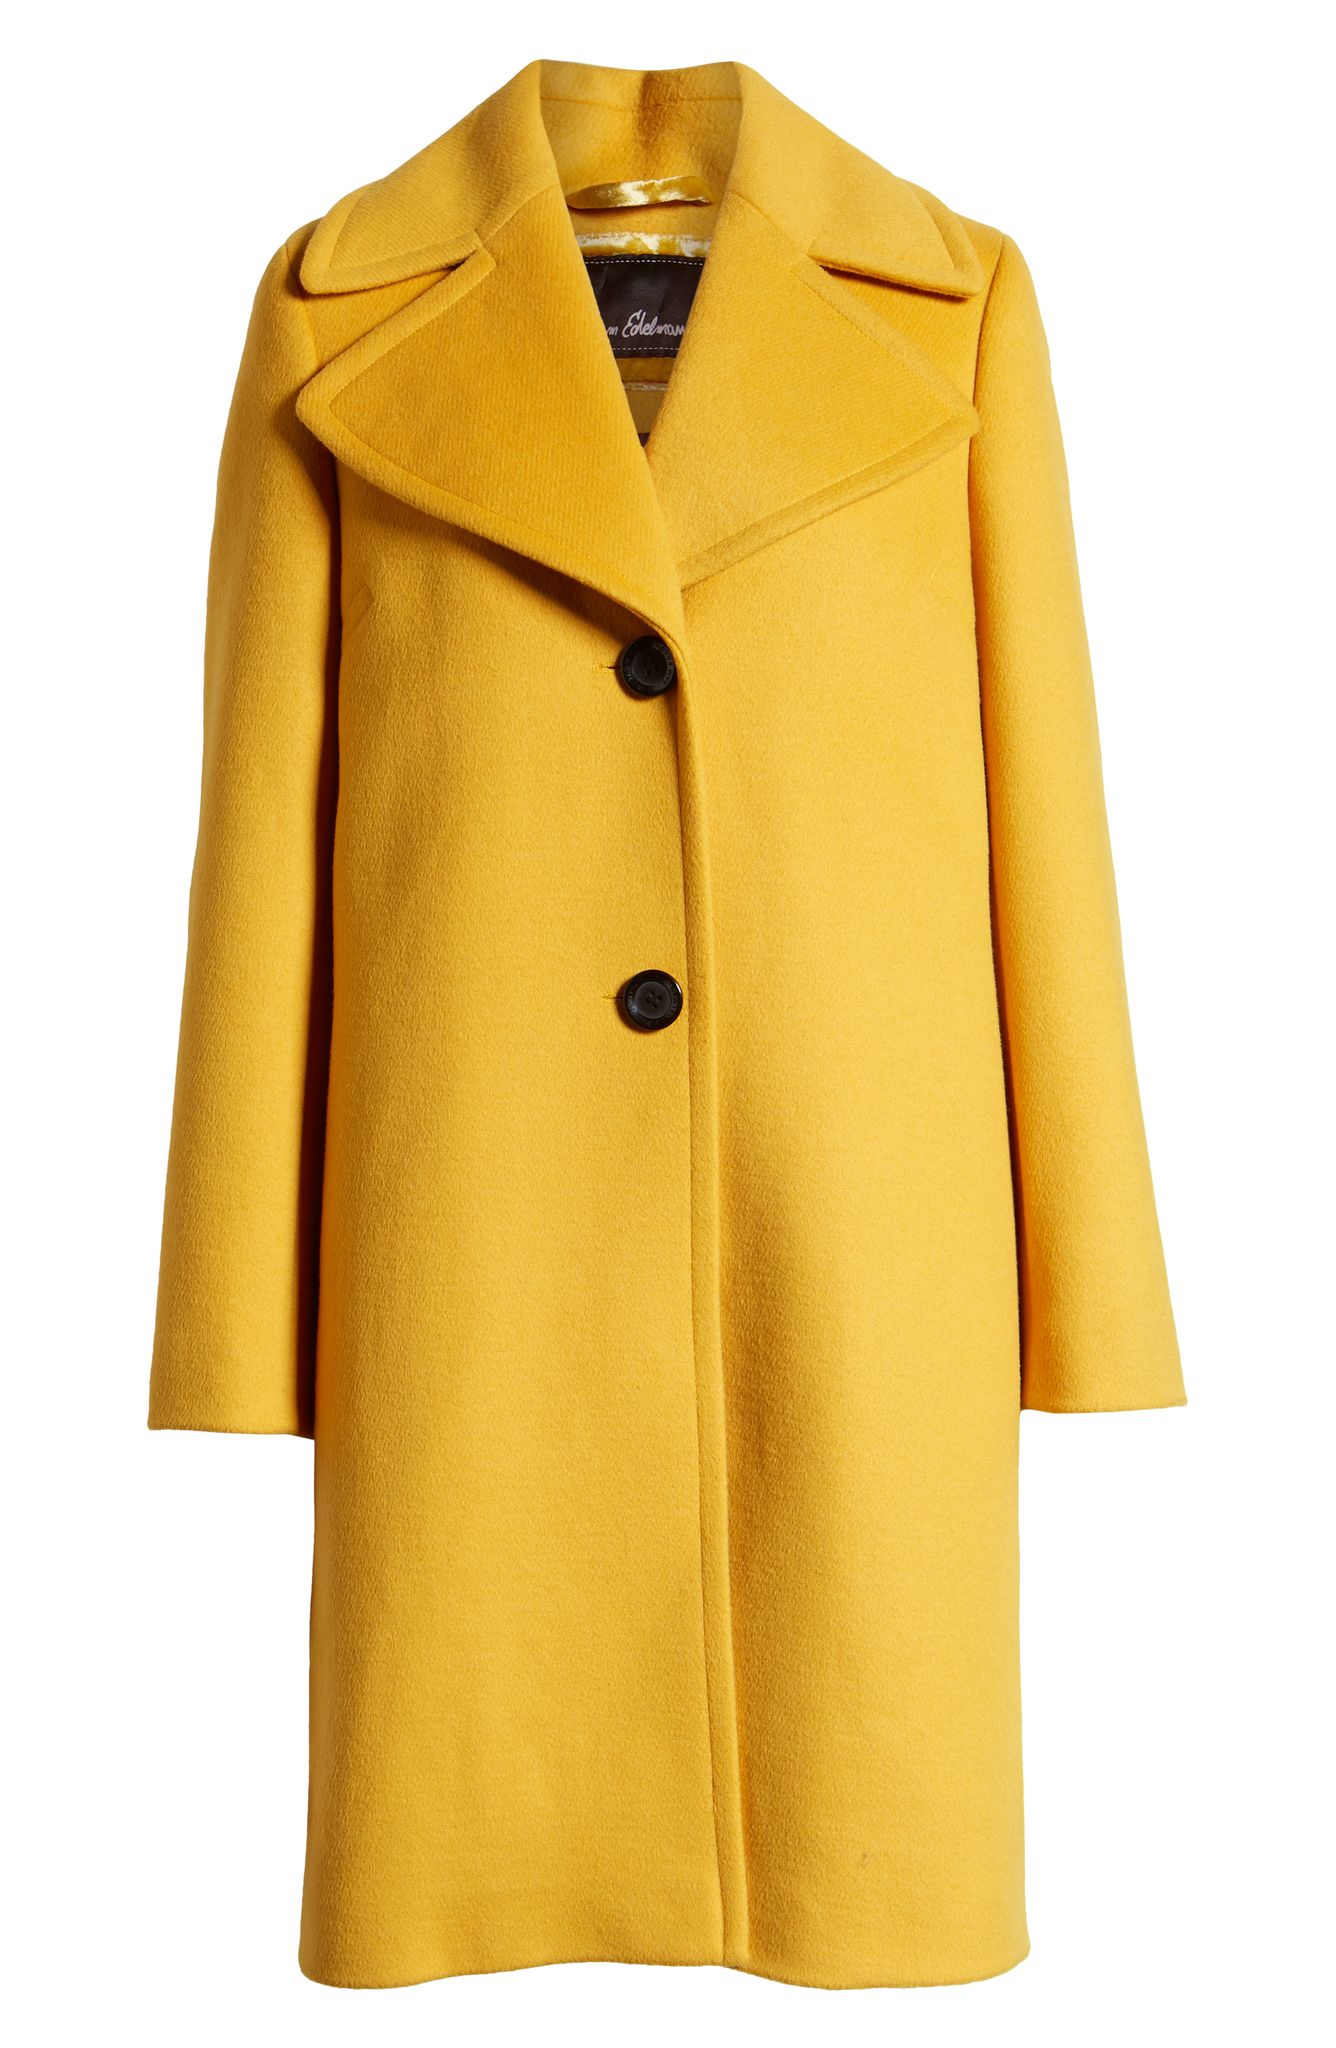 Sam Edelman Coat (normally $295): NOW $196.90 (Image: Nordstrom){ }